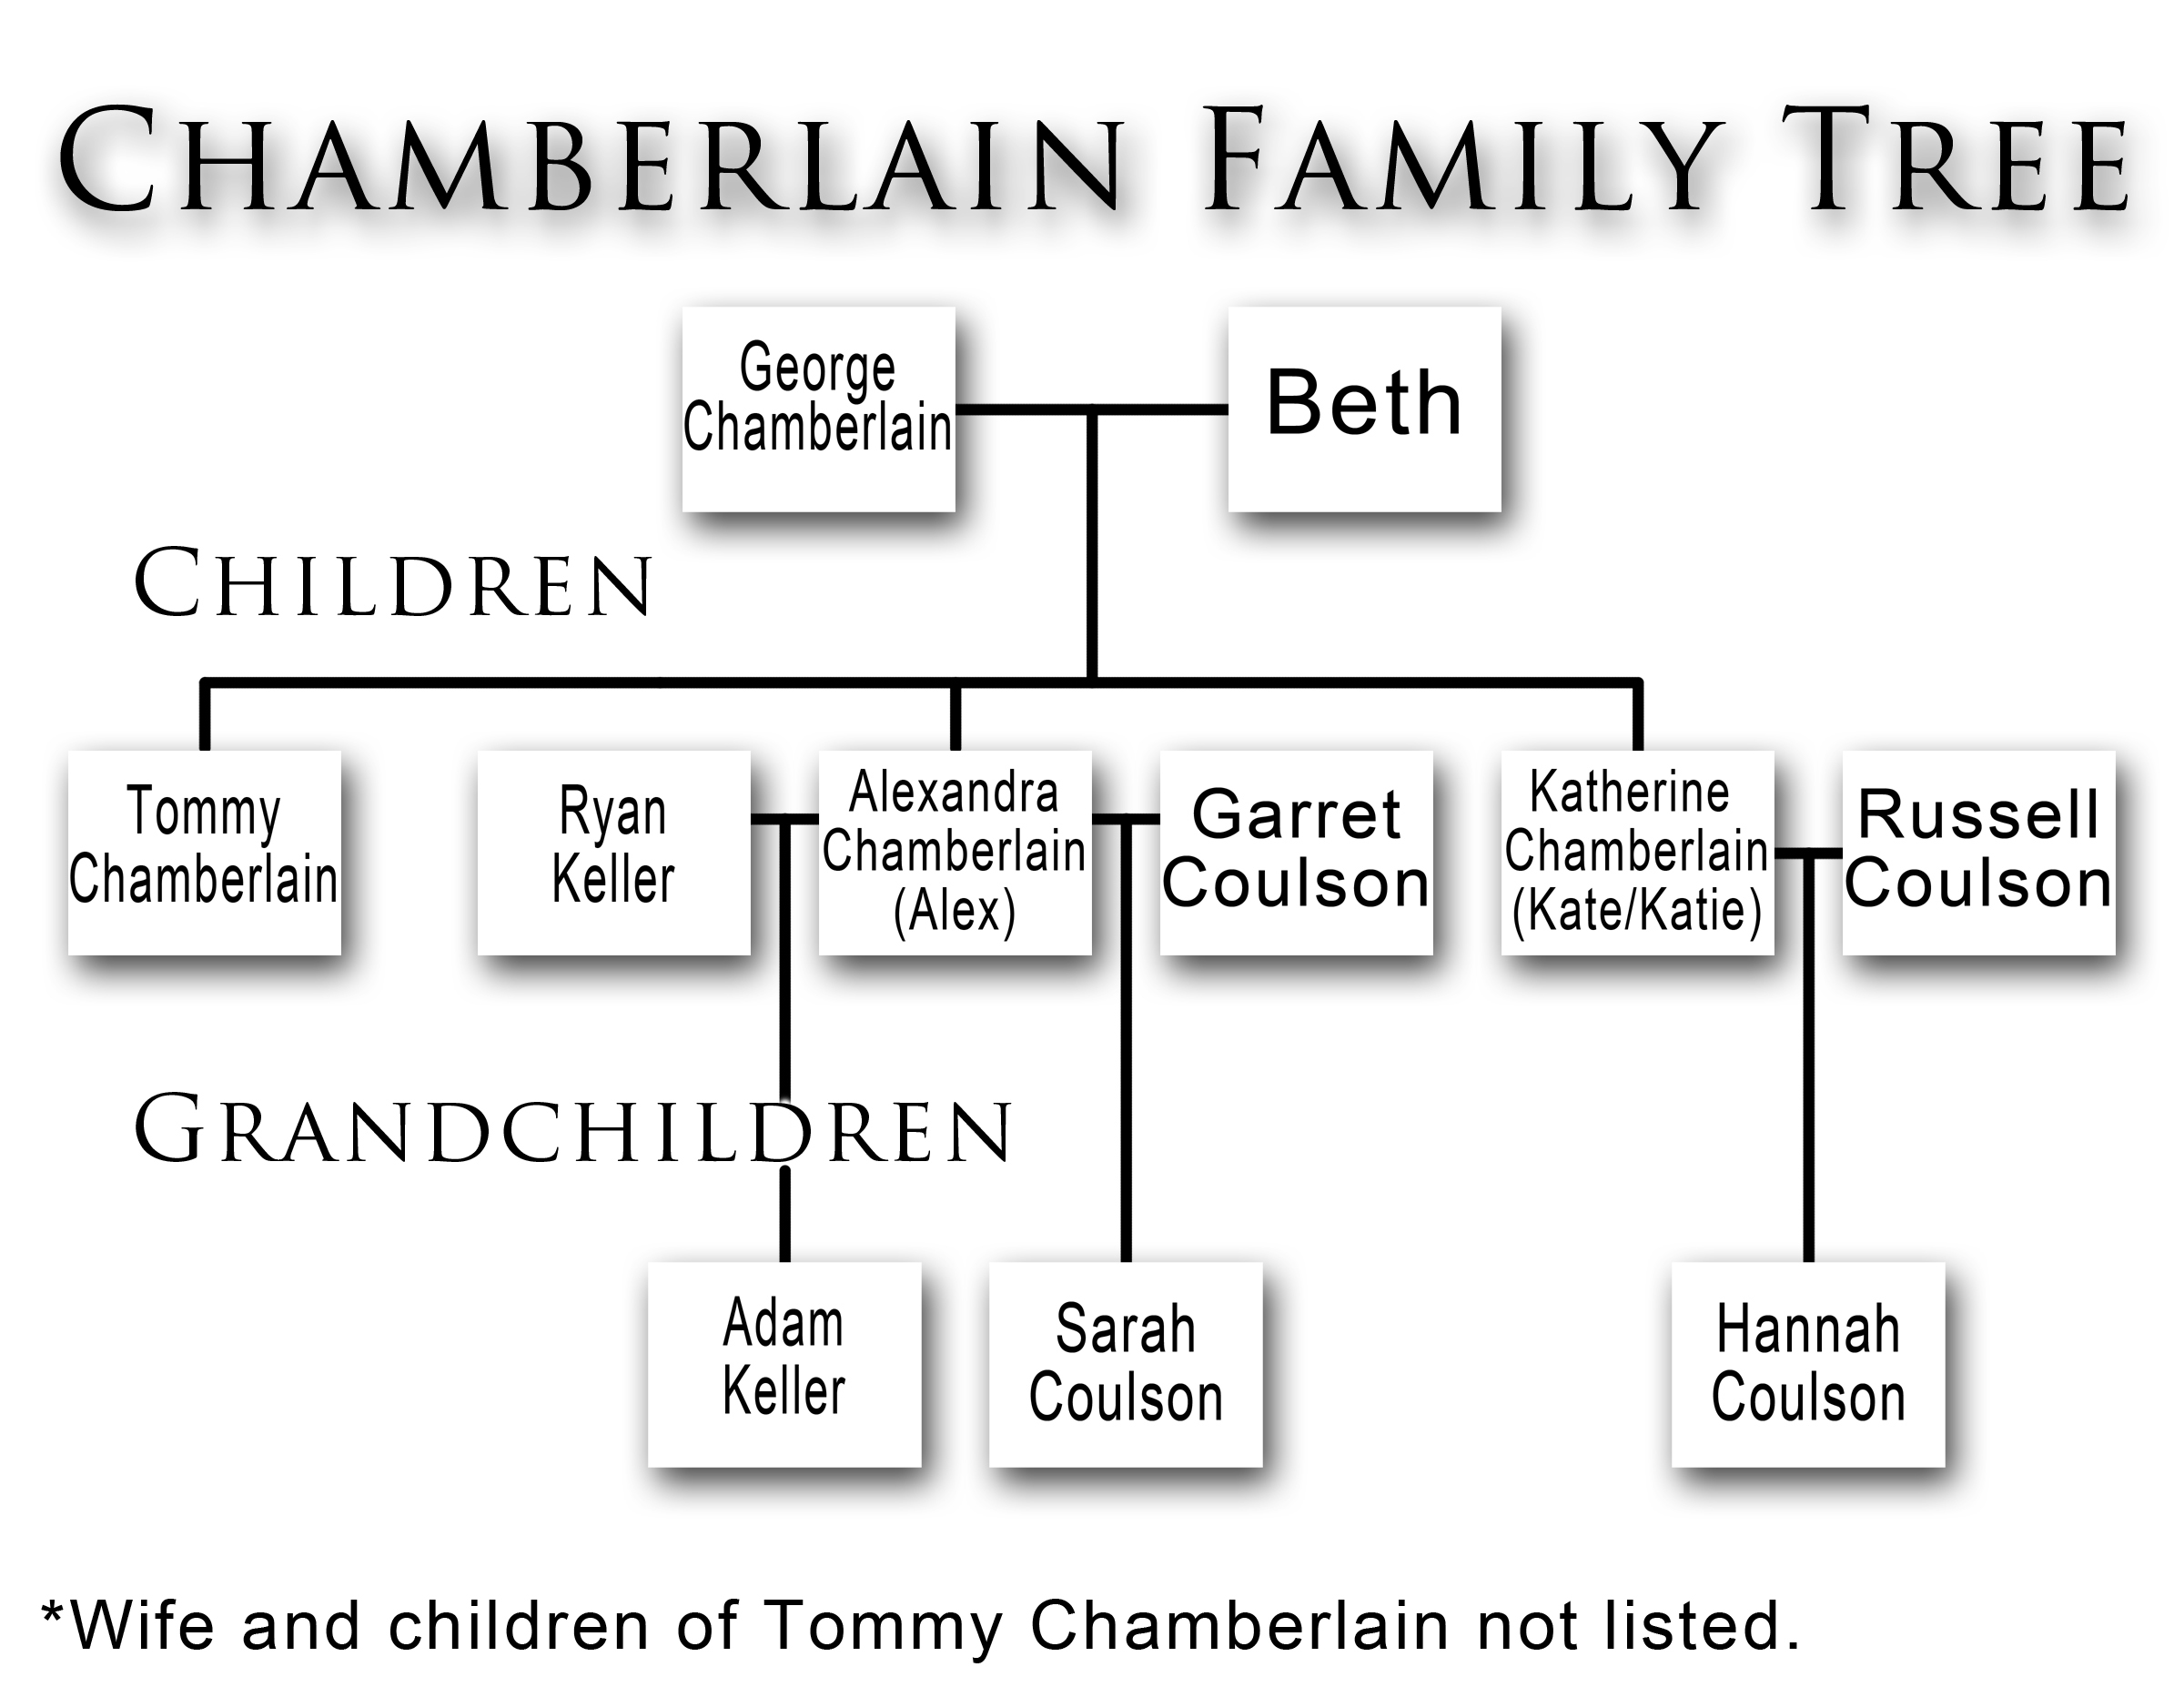 Chamberlain Family Tree